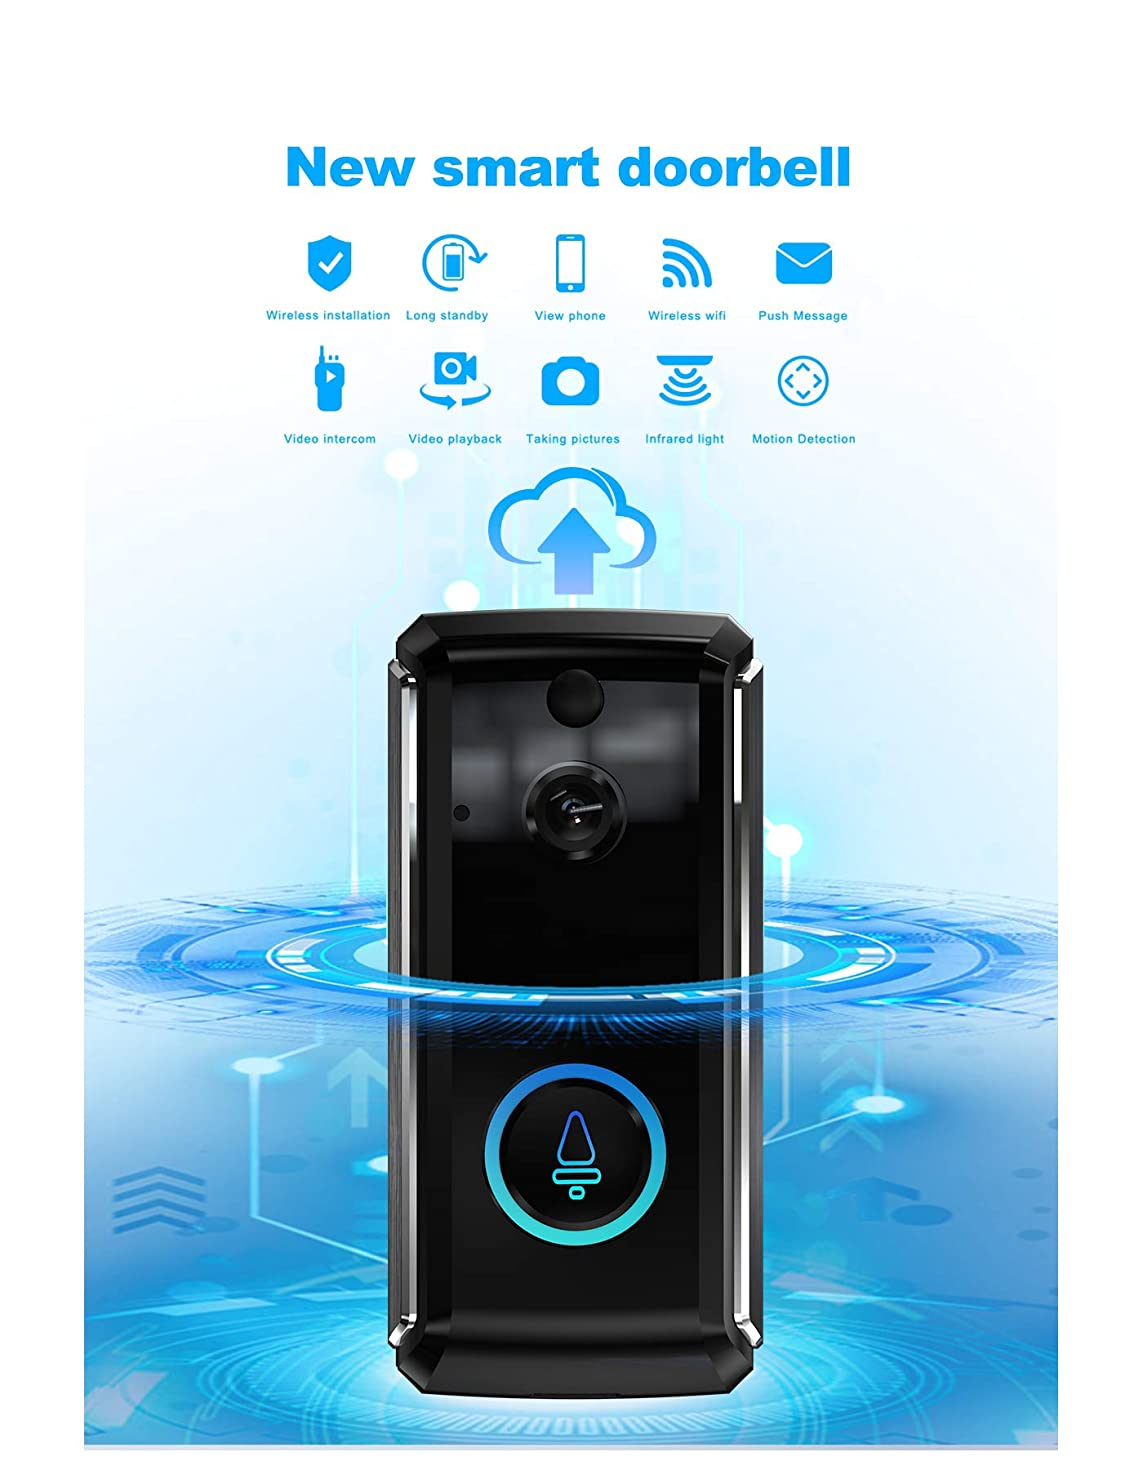 Wireless Video Doorbell WiFi Doorbell Camera Intercom Security System 1280 x 720HD Smart Doorbell for iOS & Android, Real-Time Two-Way Audio, 166 Degree Viewing Angle, PIR Motion Detection (Black)